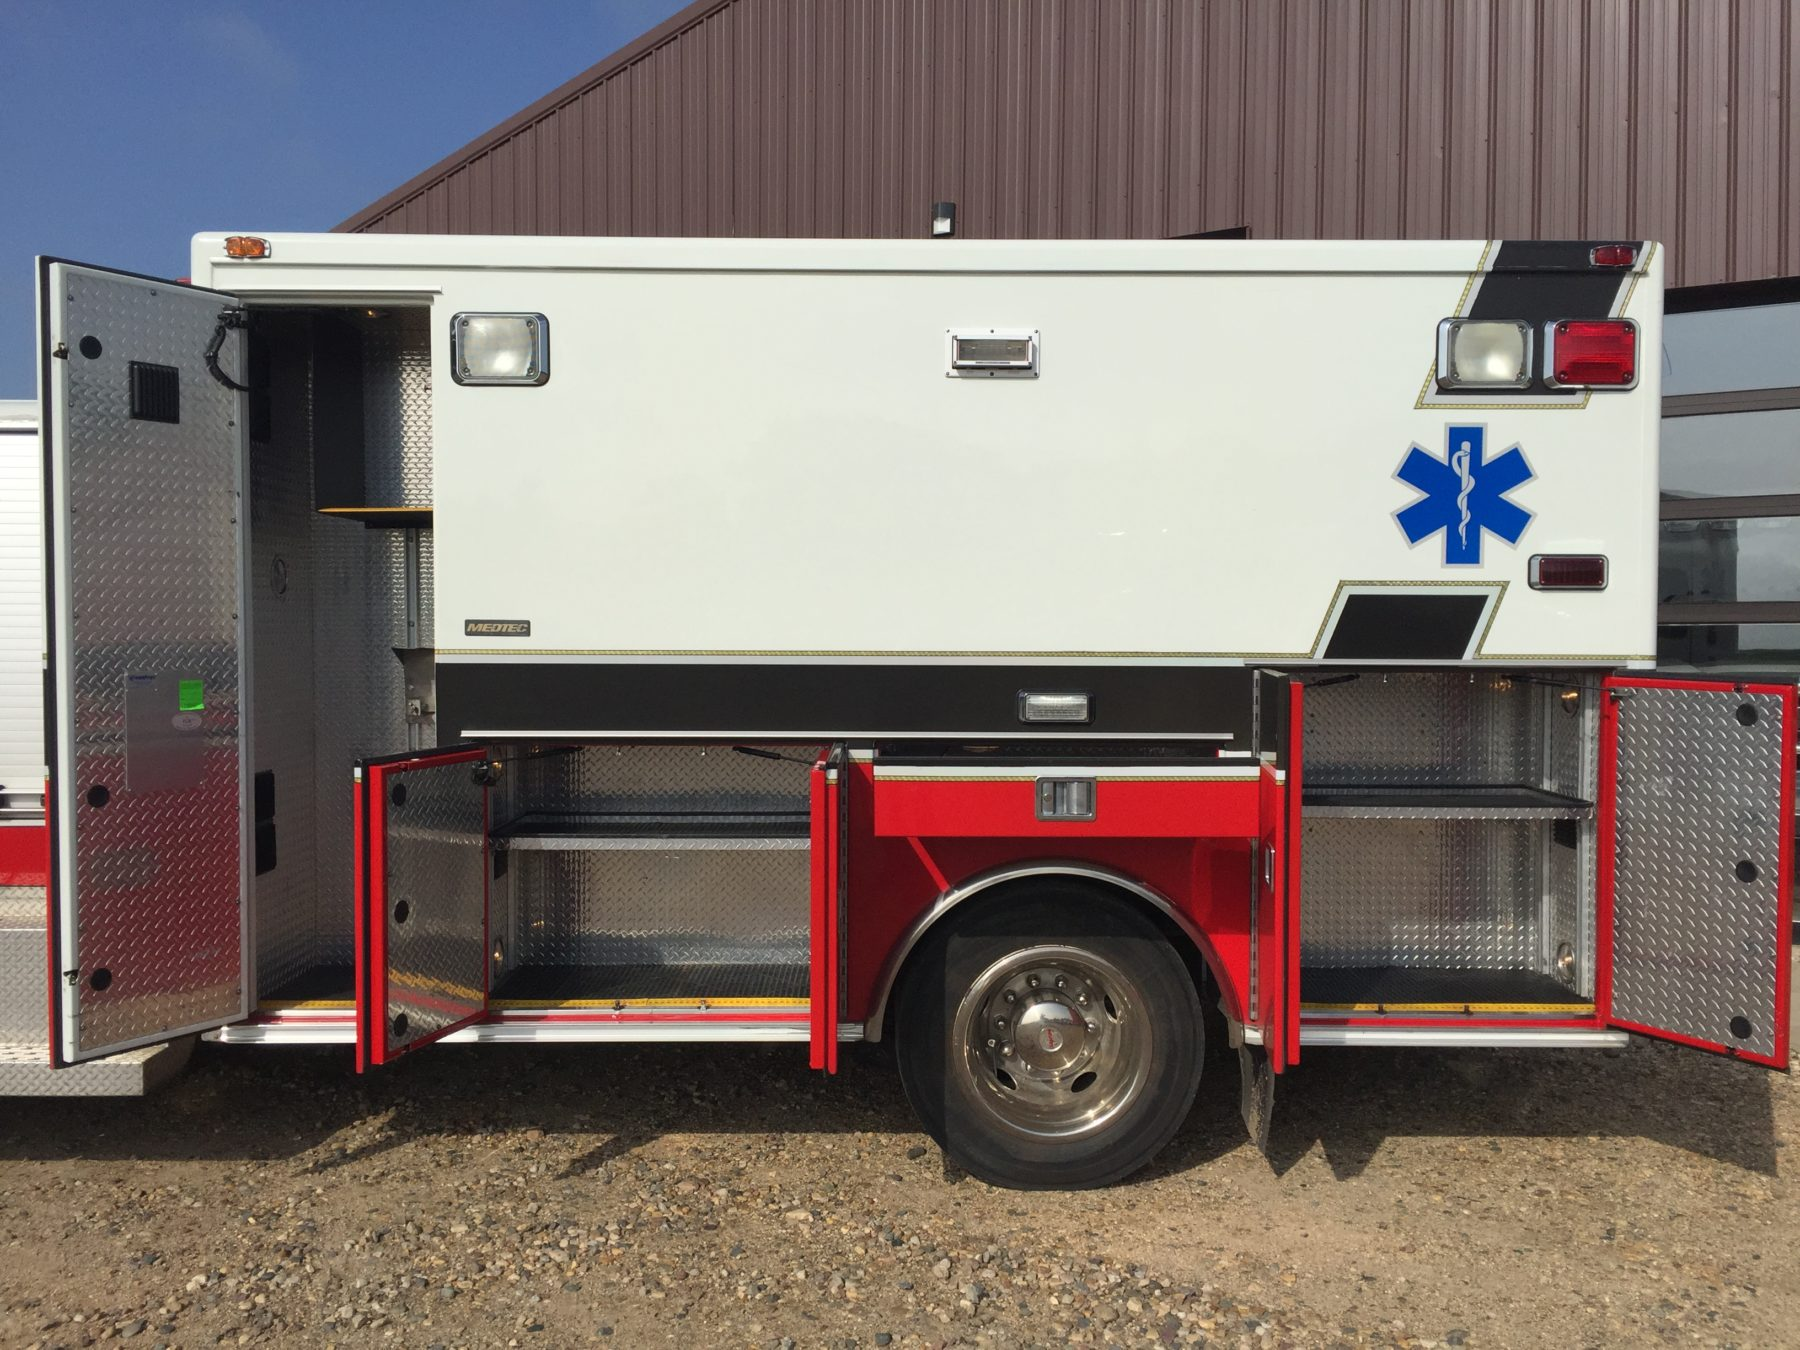 2009 International 4300 Heavy Duty Ambulance For Sale – Picture 6